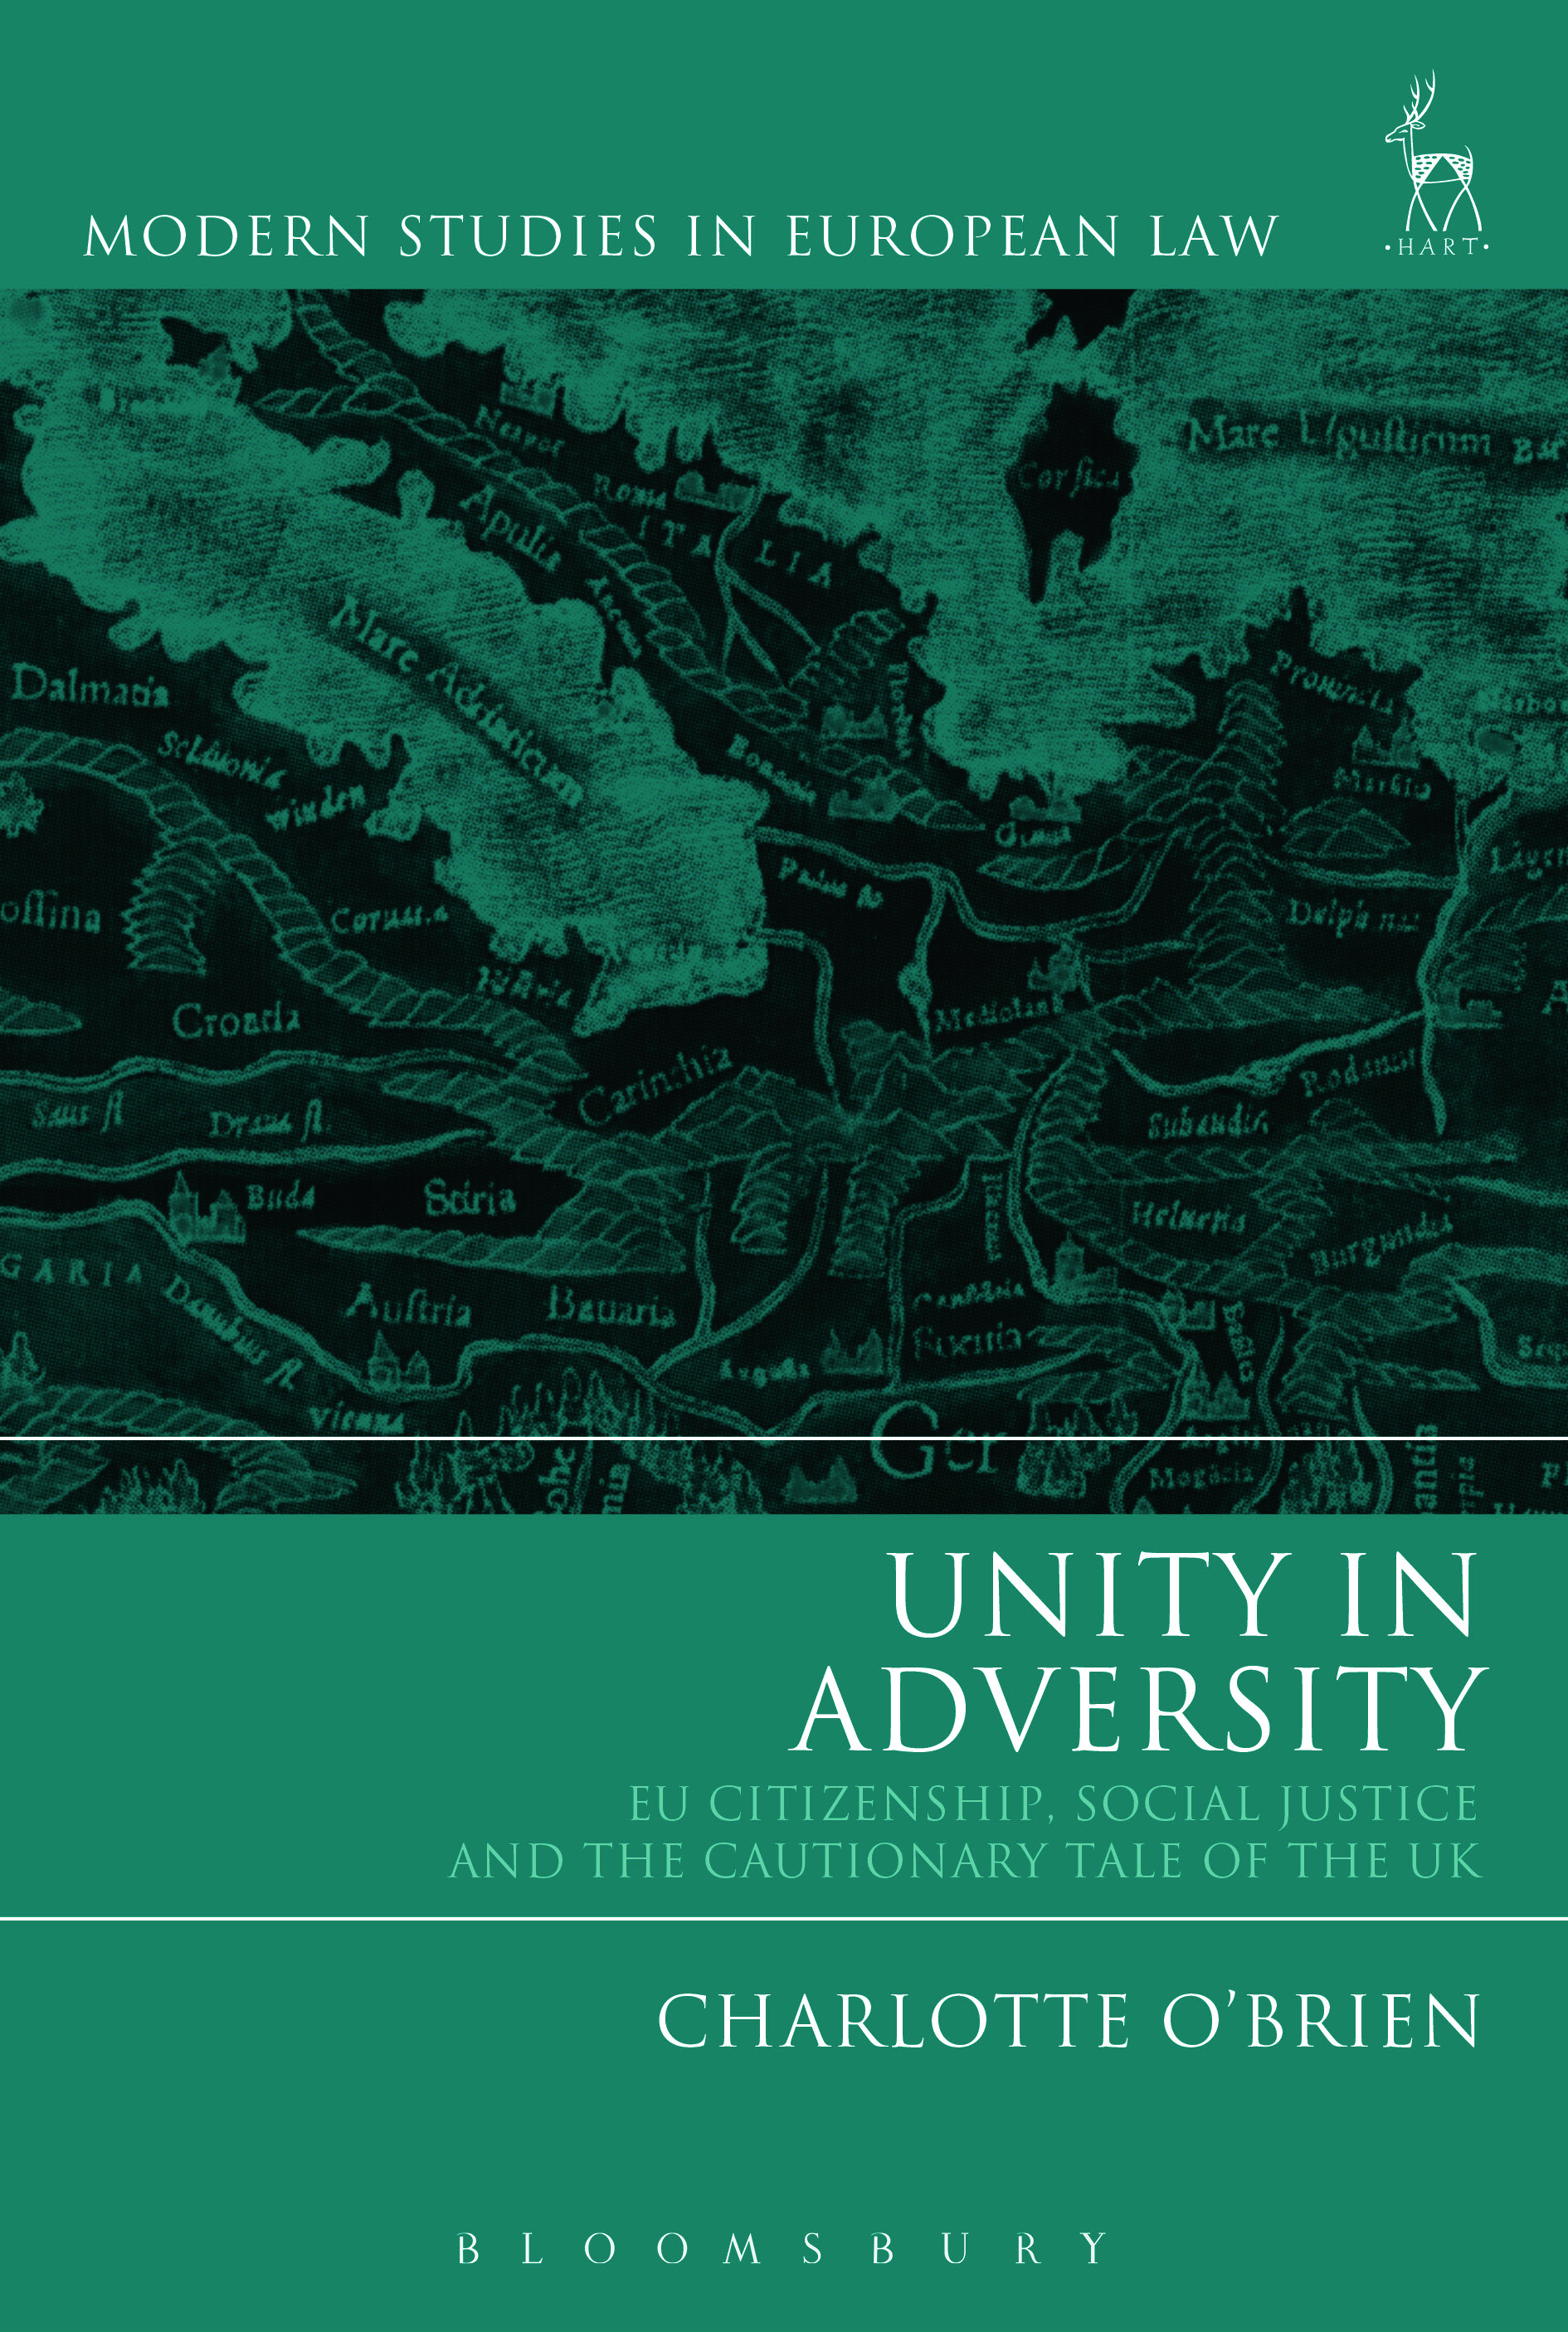 Unity in Adversity image